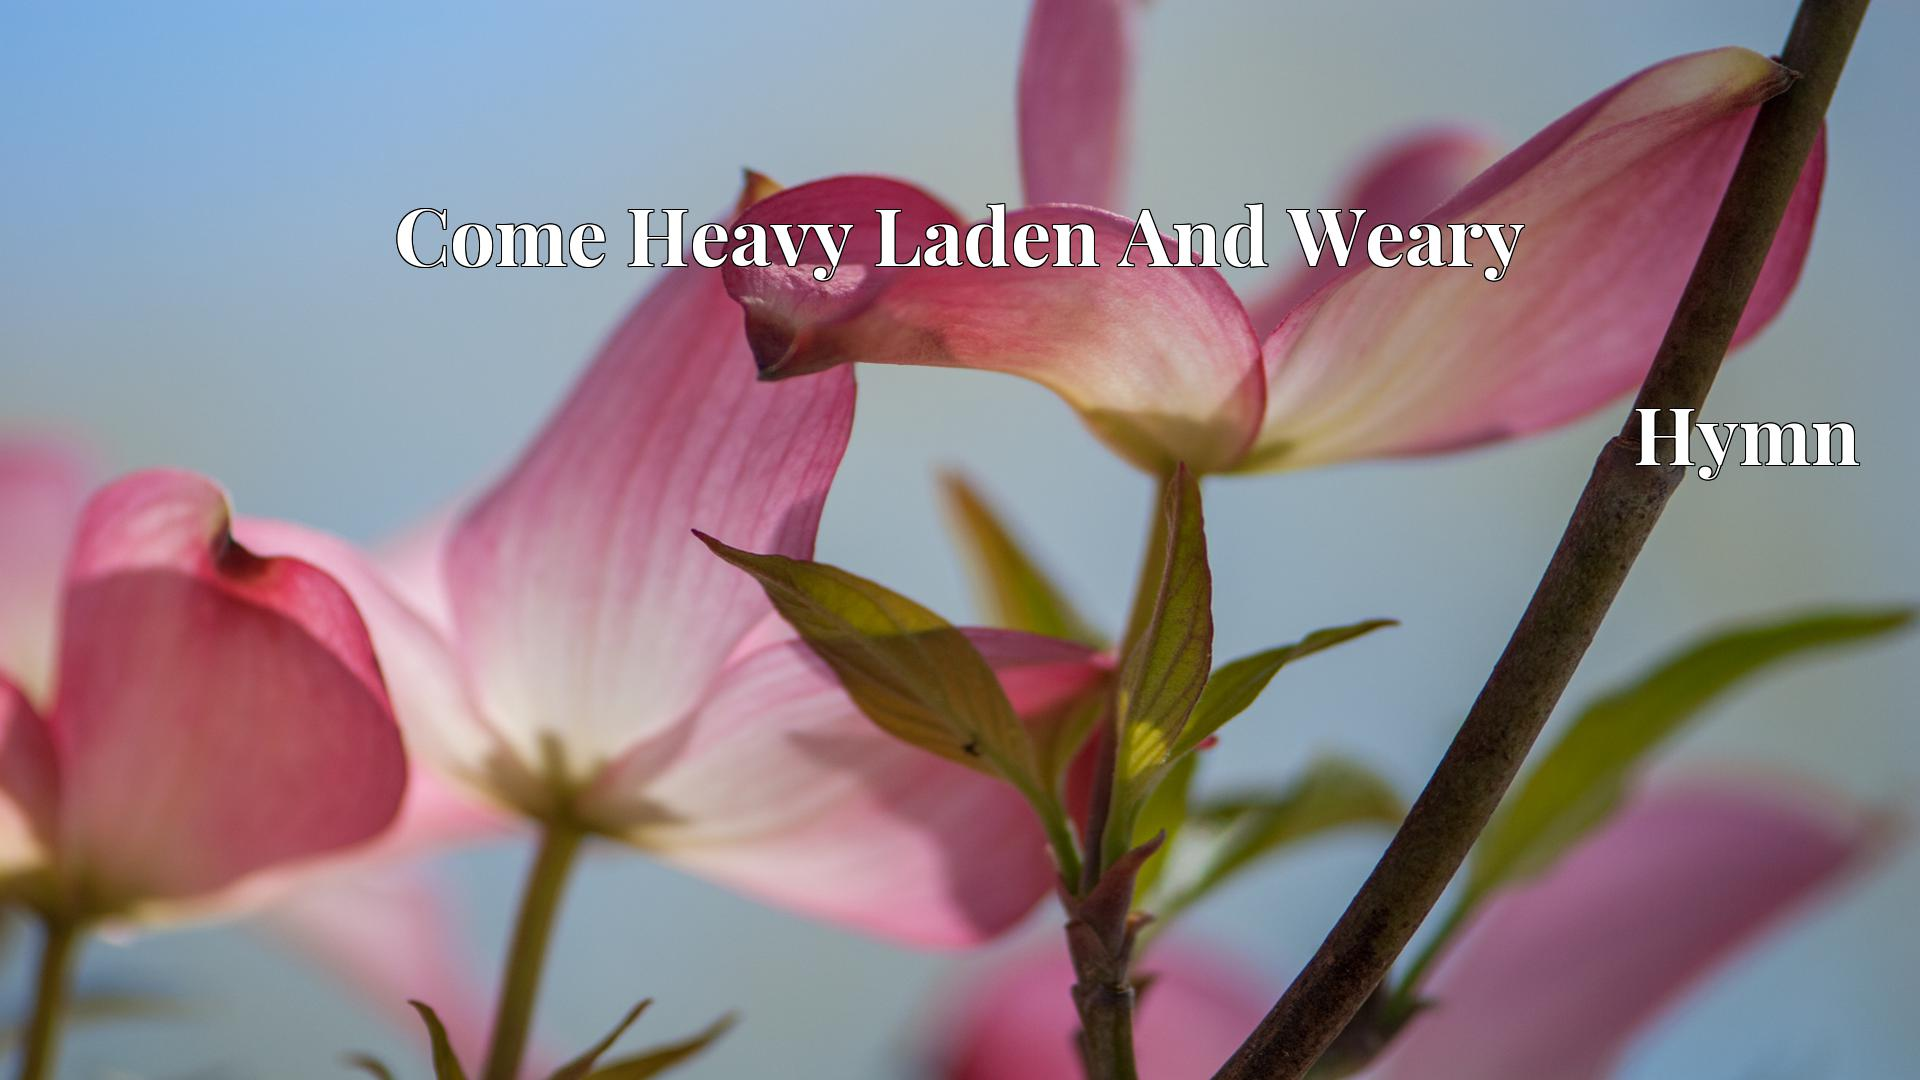 Come Heavy Laden And Weary - Hymn